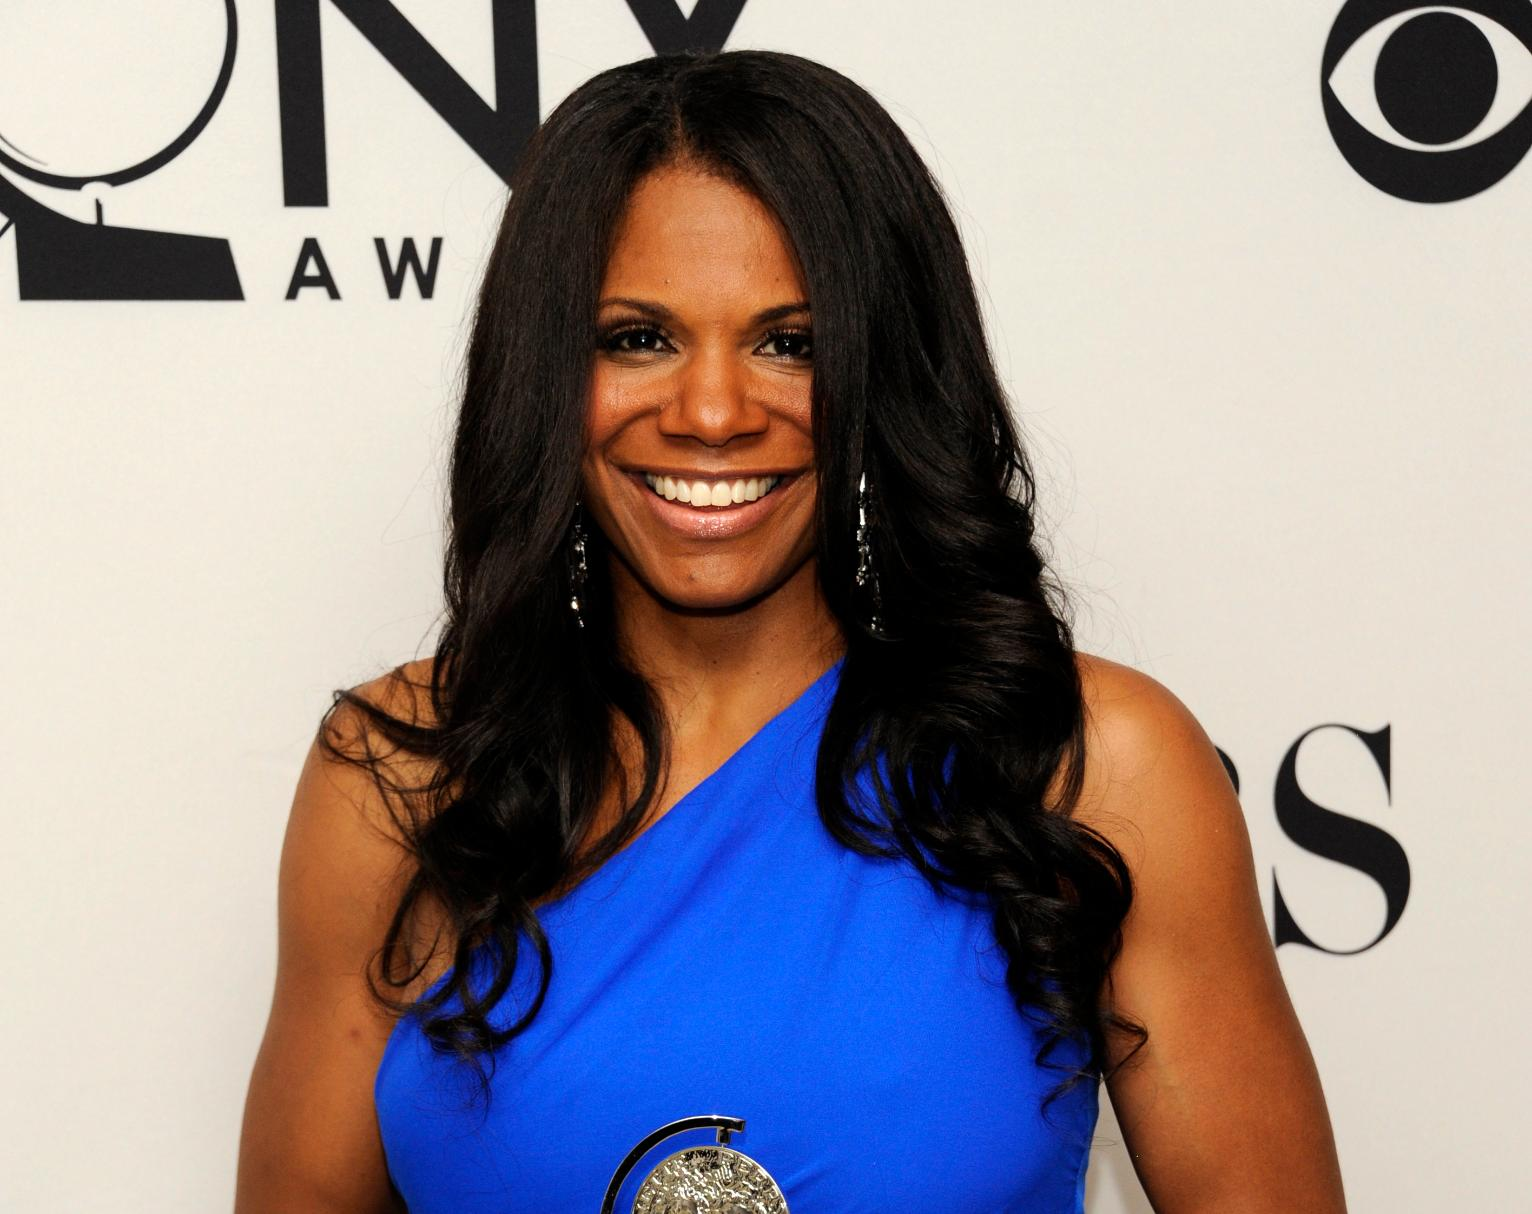 Broadway Star Audra Mcdonald Gives Birth To Baby Daughter